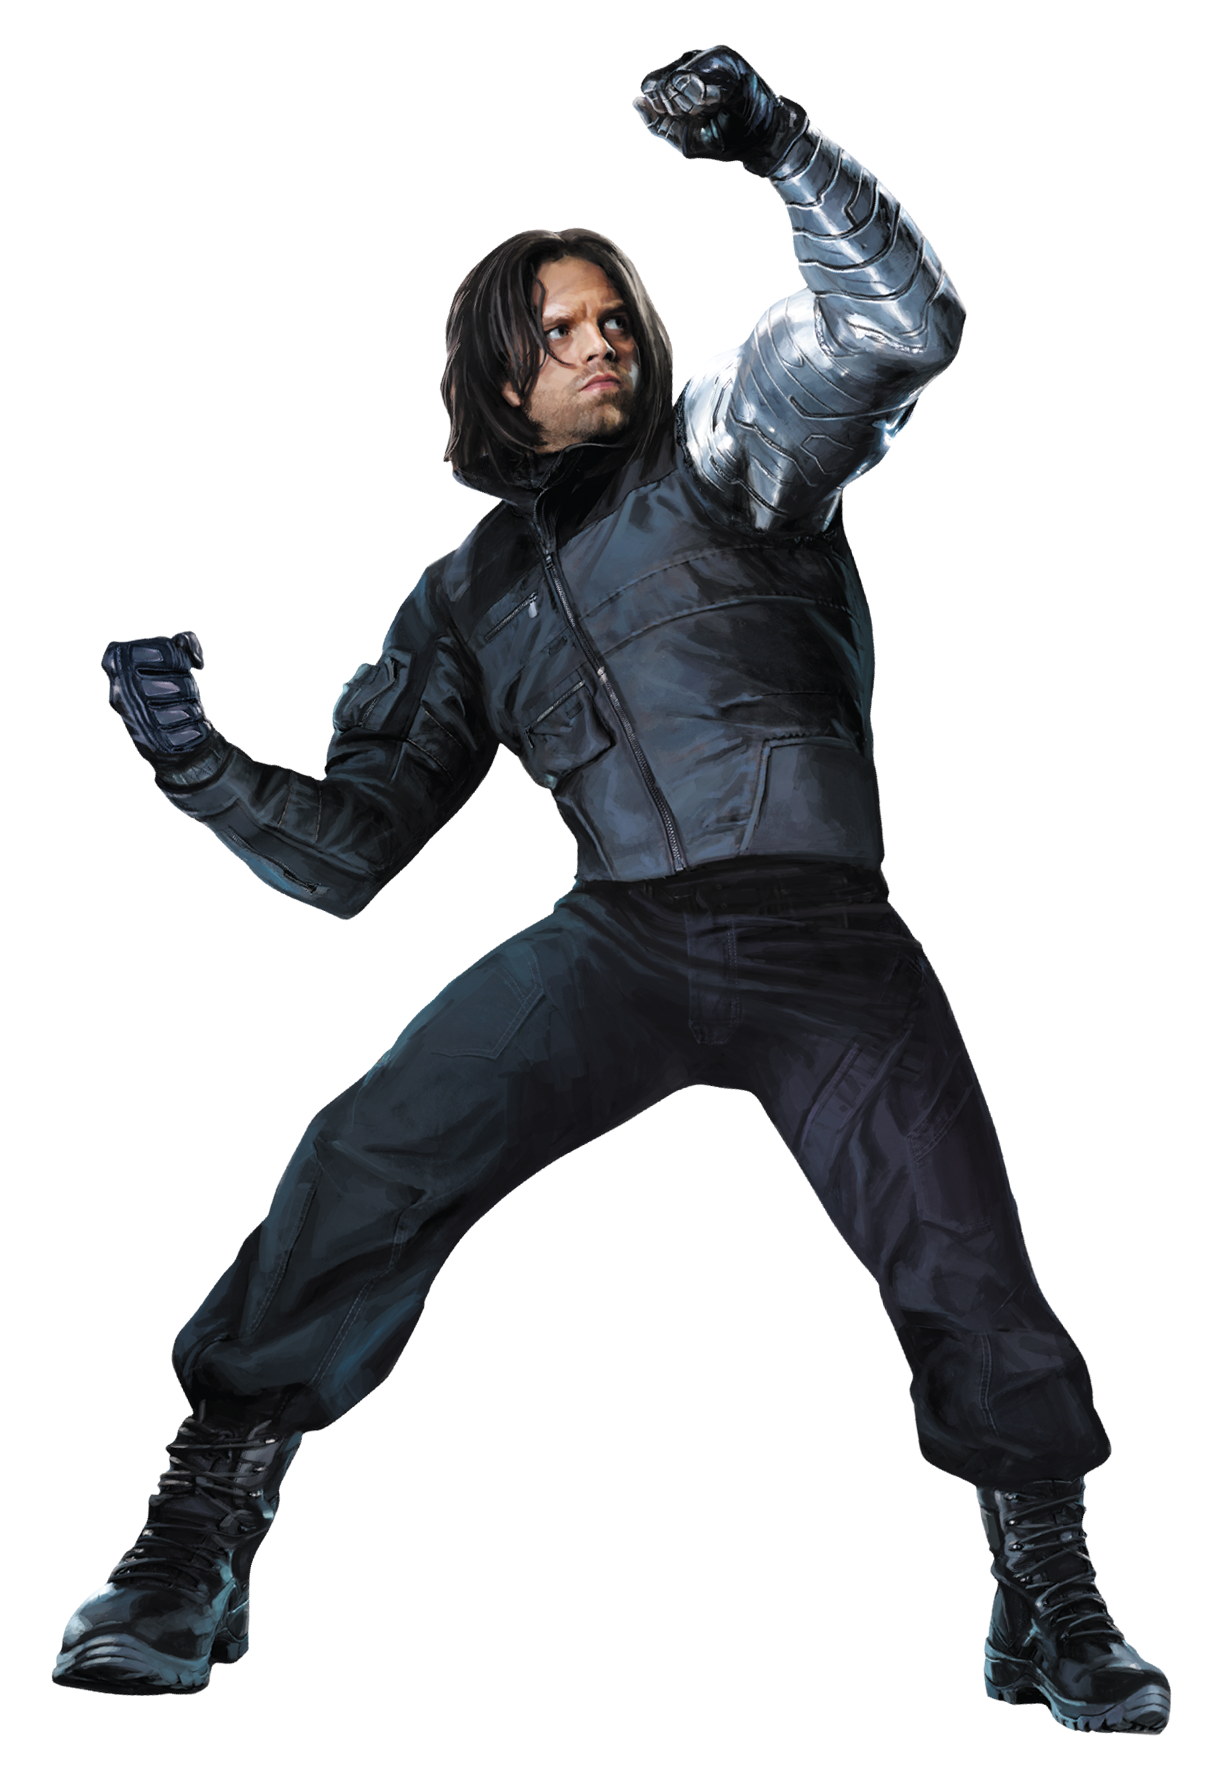 Captain america the winter soldier png. Image civil war char